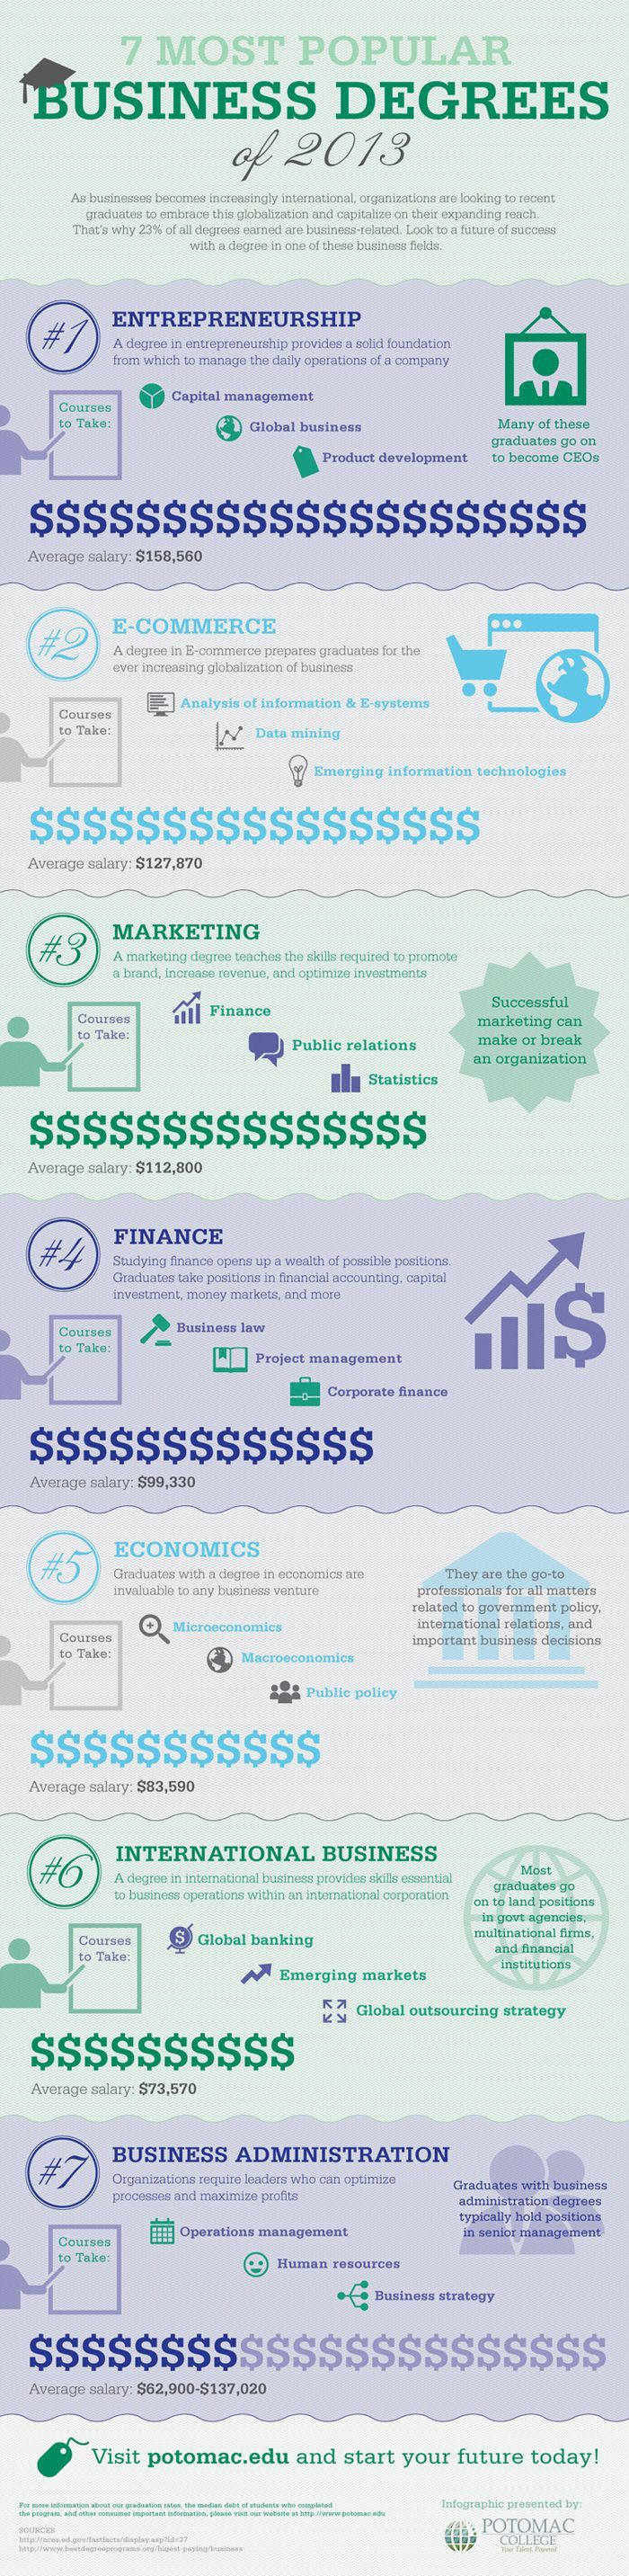 #infographic #business #business #popular #degrees